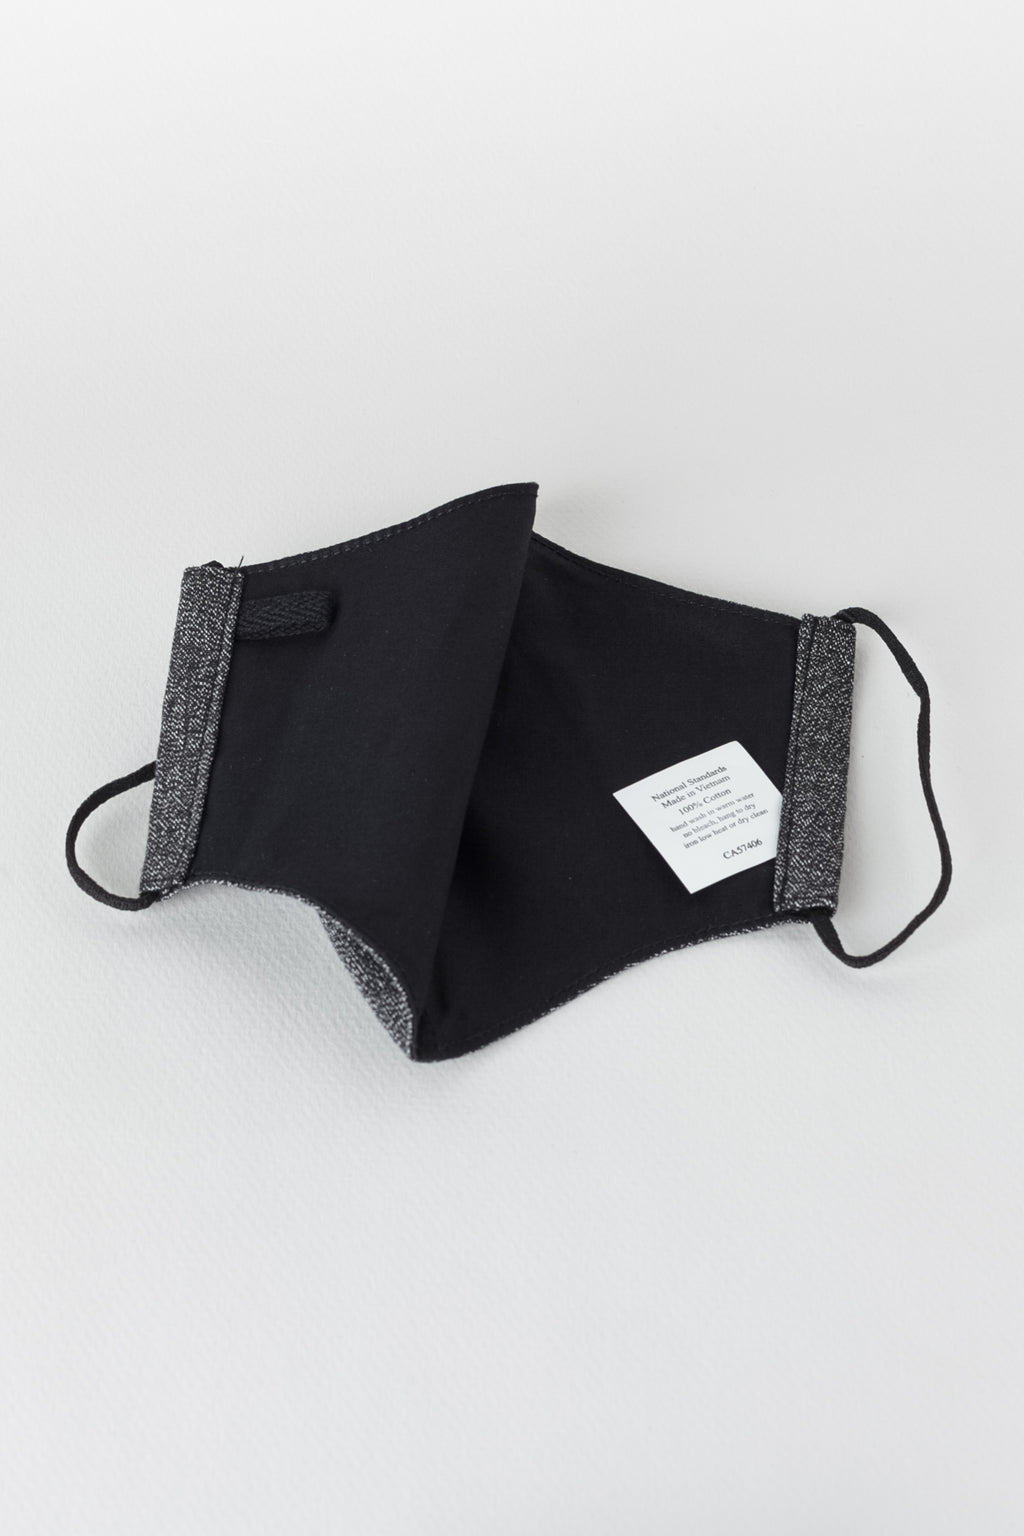 Japanese Melange Drill Face Mask in Melange Black 01